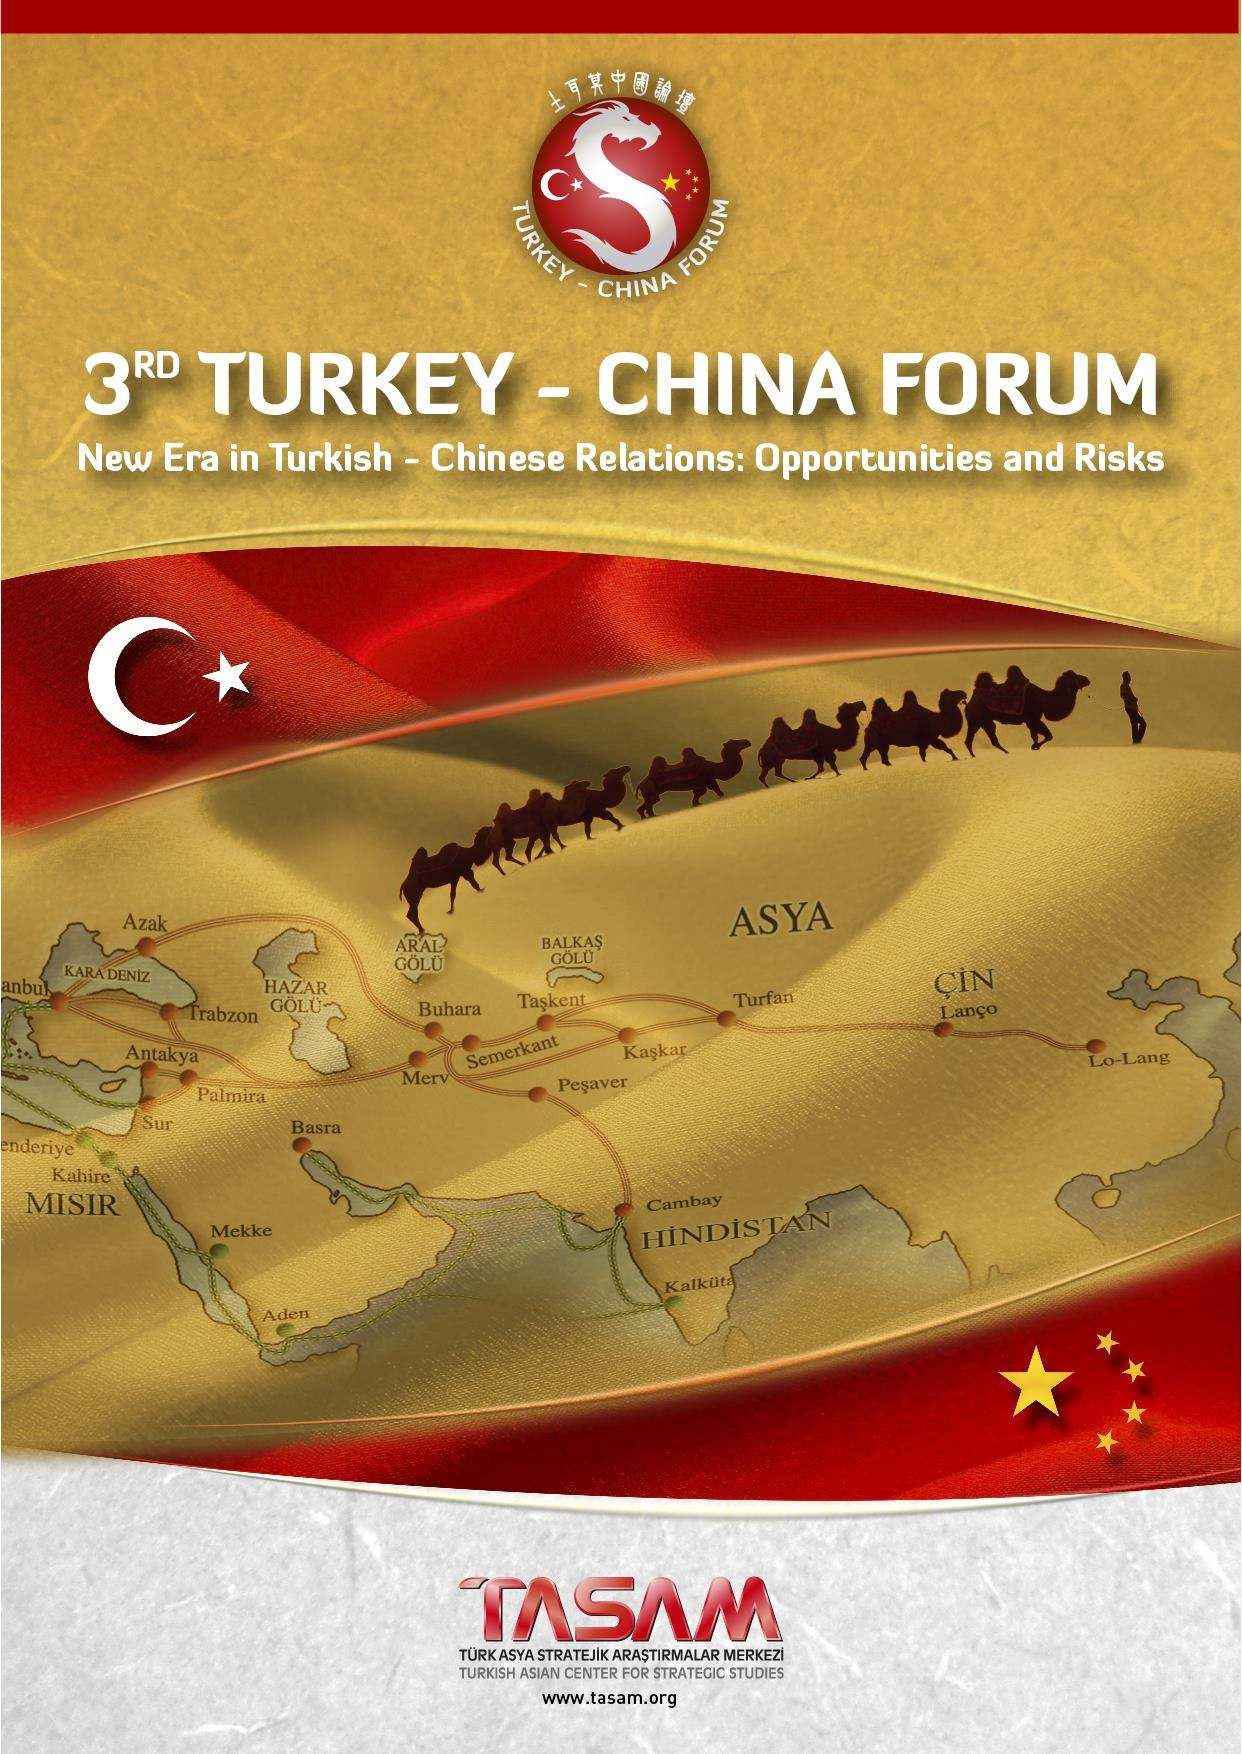 3rd Turkey - China Forum